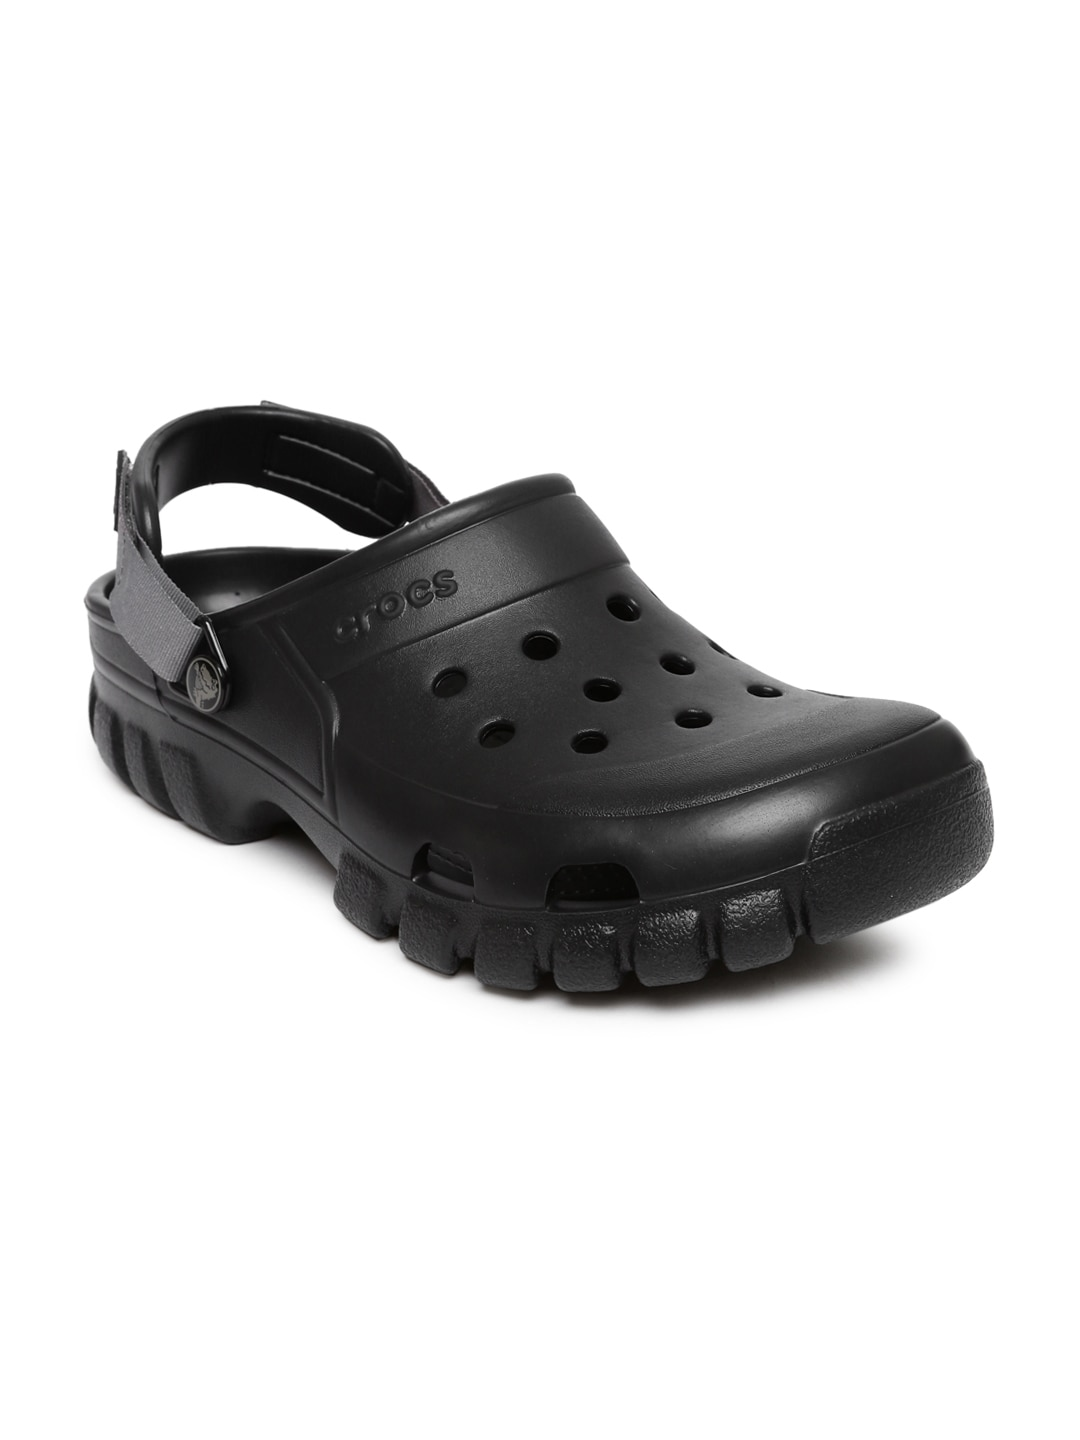 ea3eb4791e95 Crocs Men Footwear - Buy Crocs Shoes and Sandals For Men Online in India